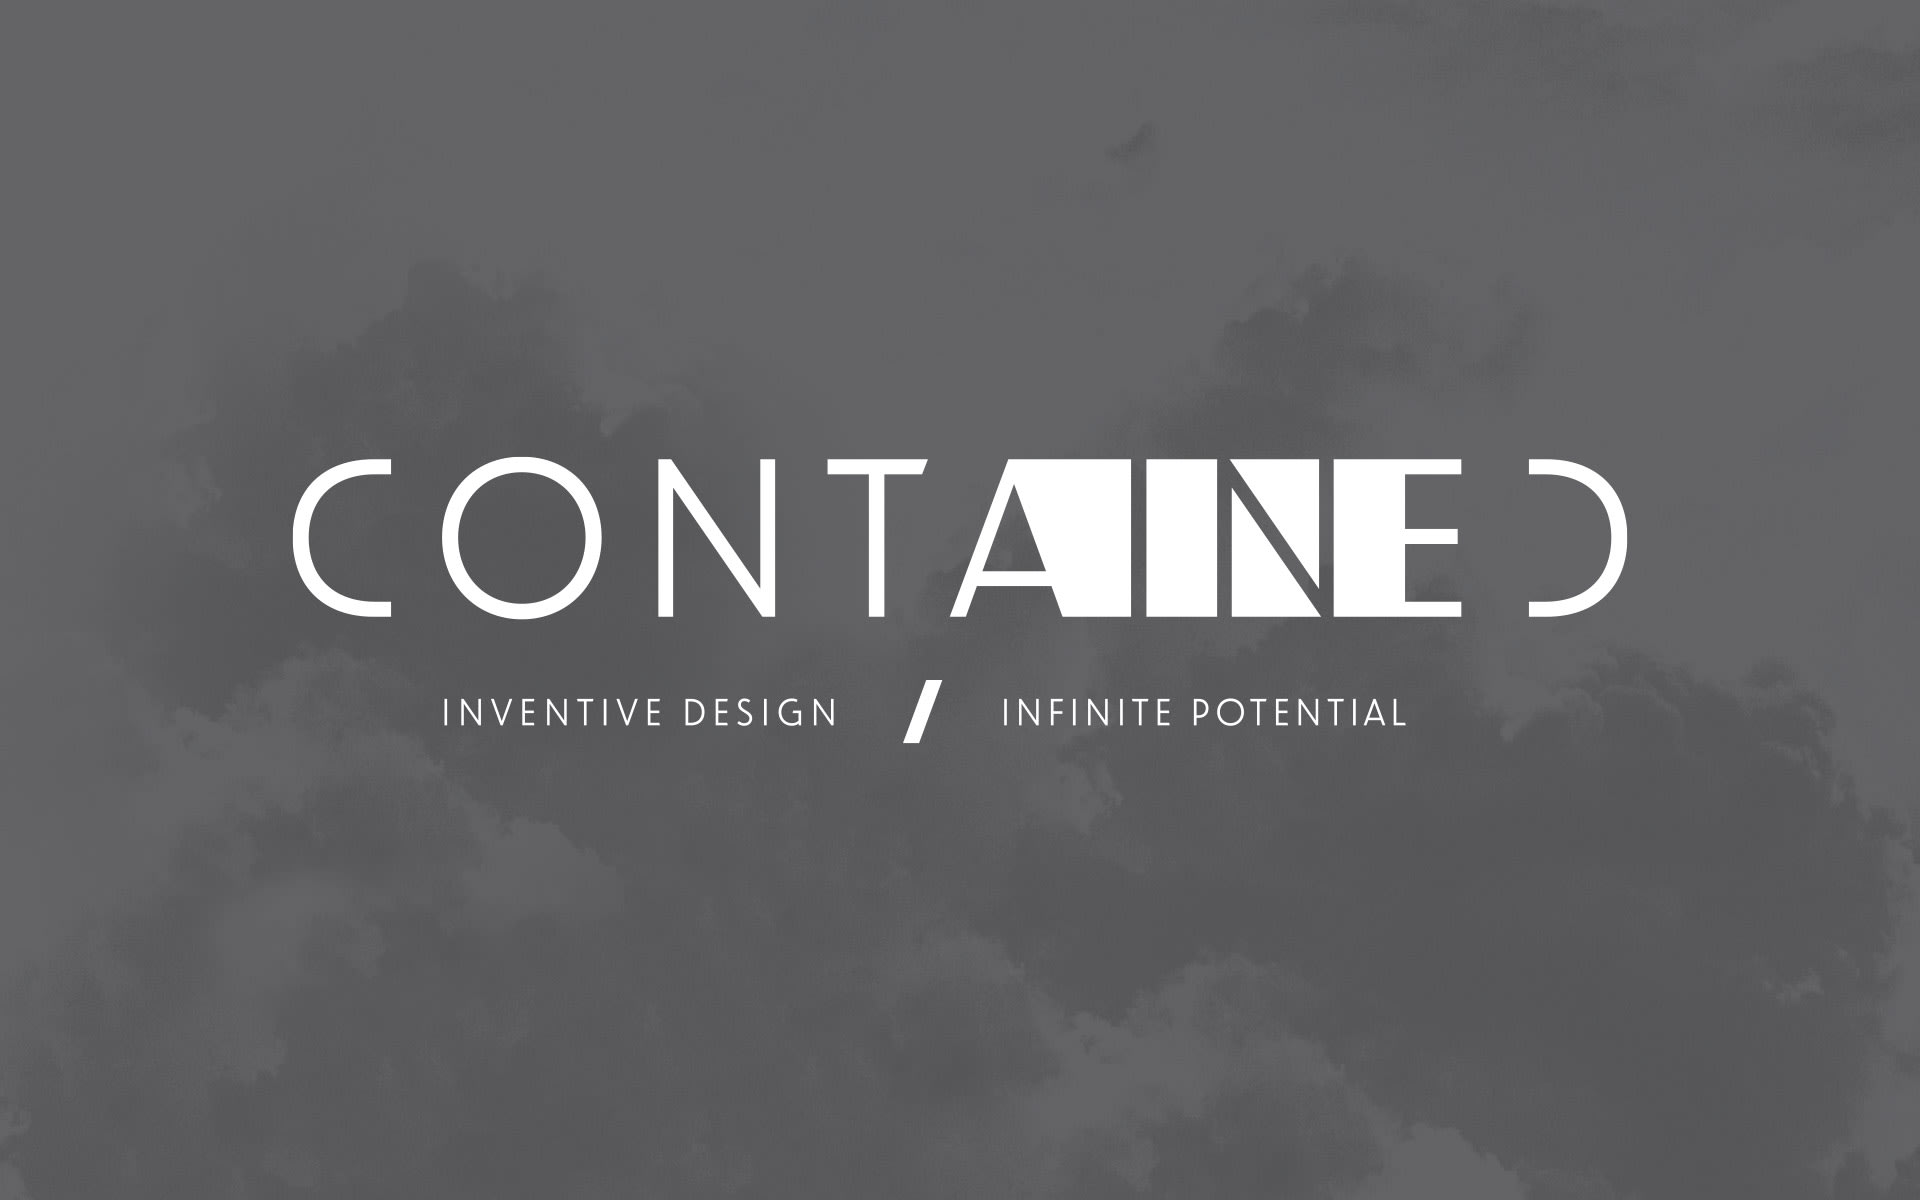 Contained-Brand-Design